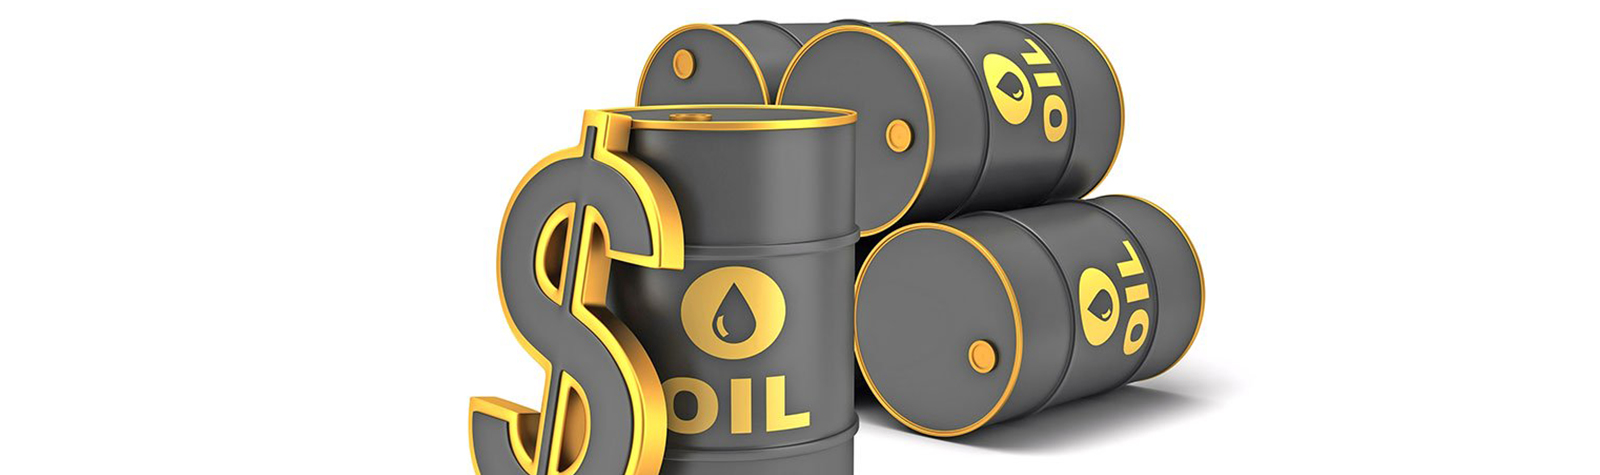 Black gold on recovery path to $50 per barrel